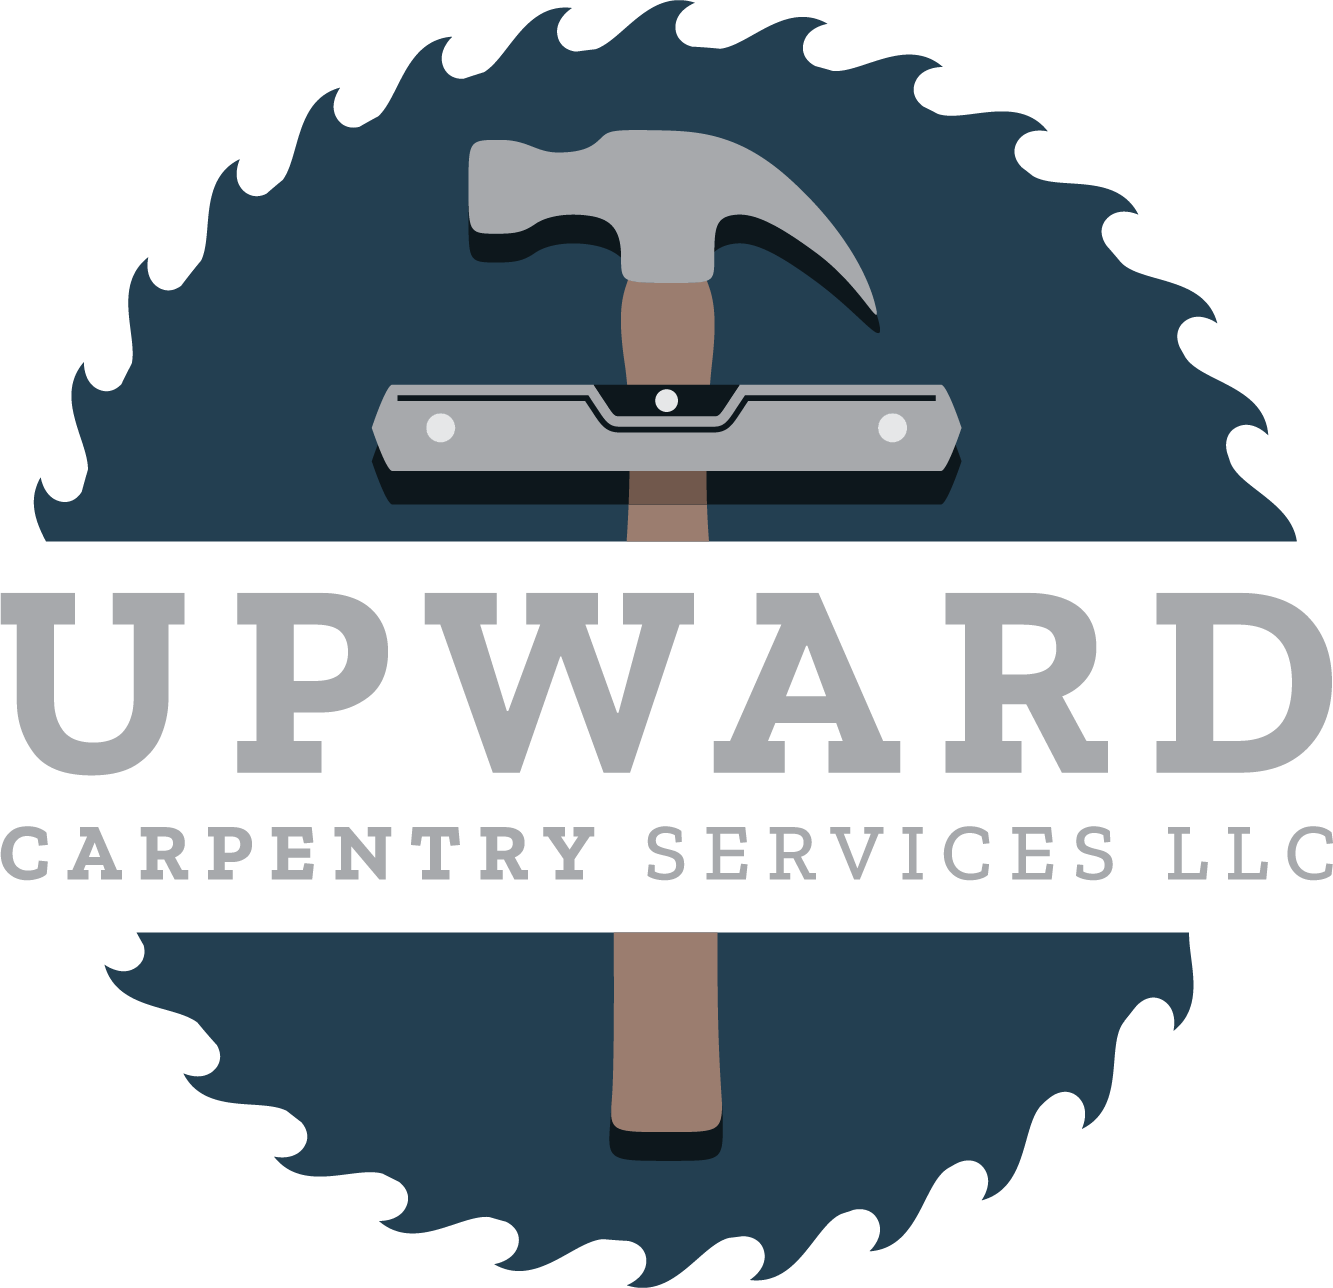 Upward Carpentry